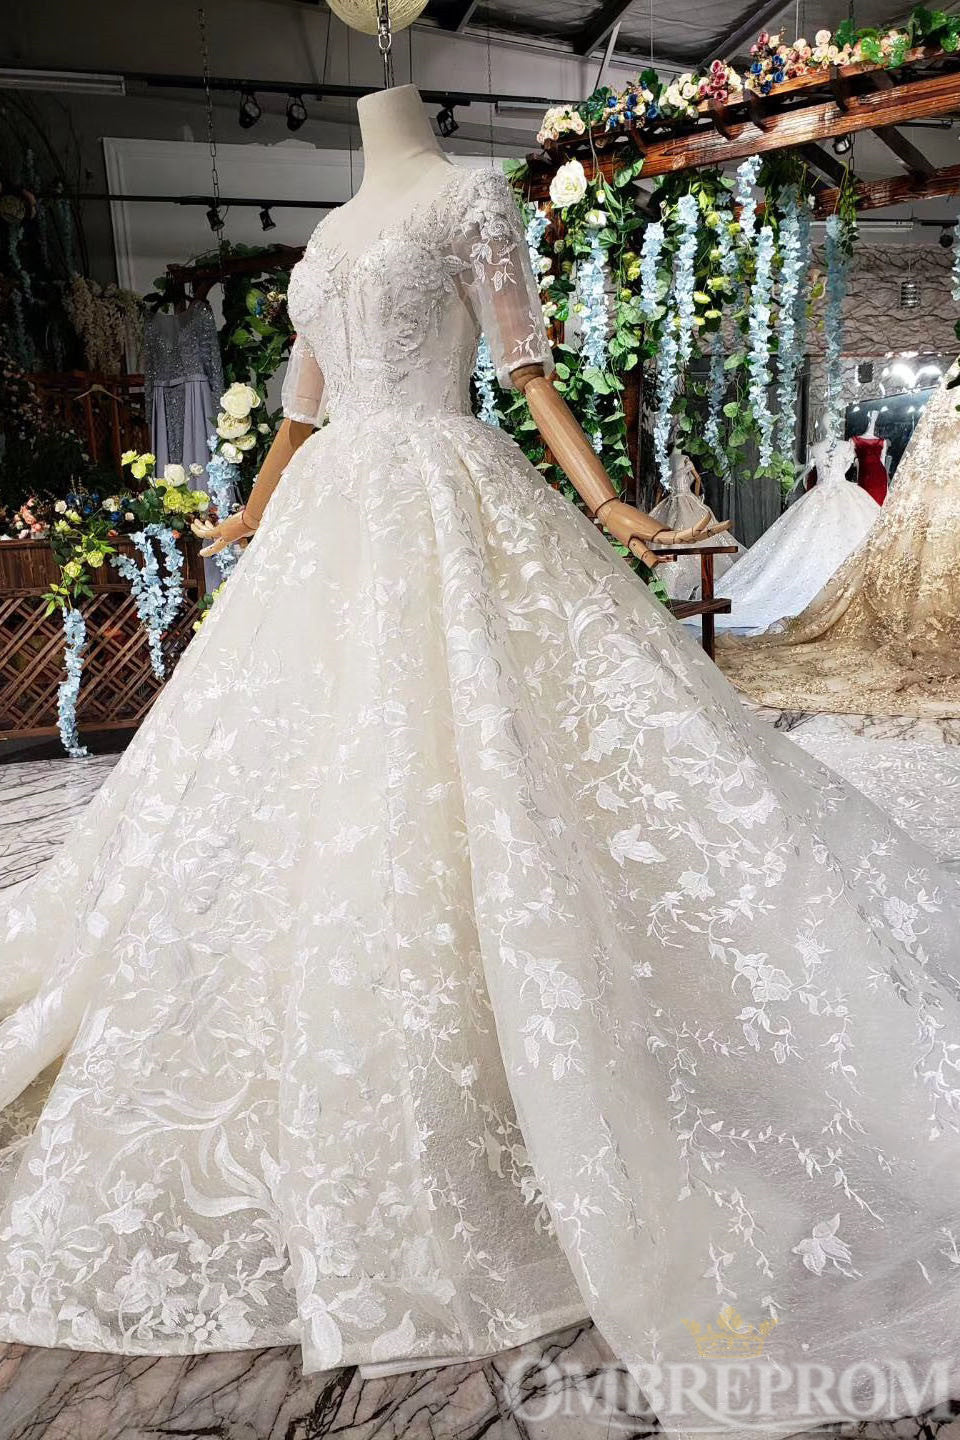 Sparkly Half Sleeves Lace Wedding Dress with Appliques Bridal Gown W715